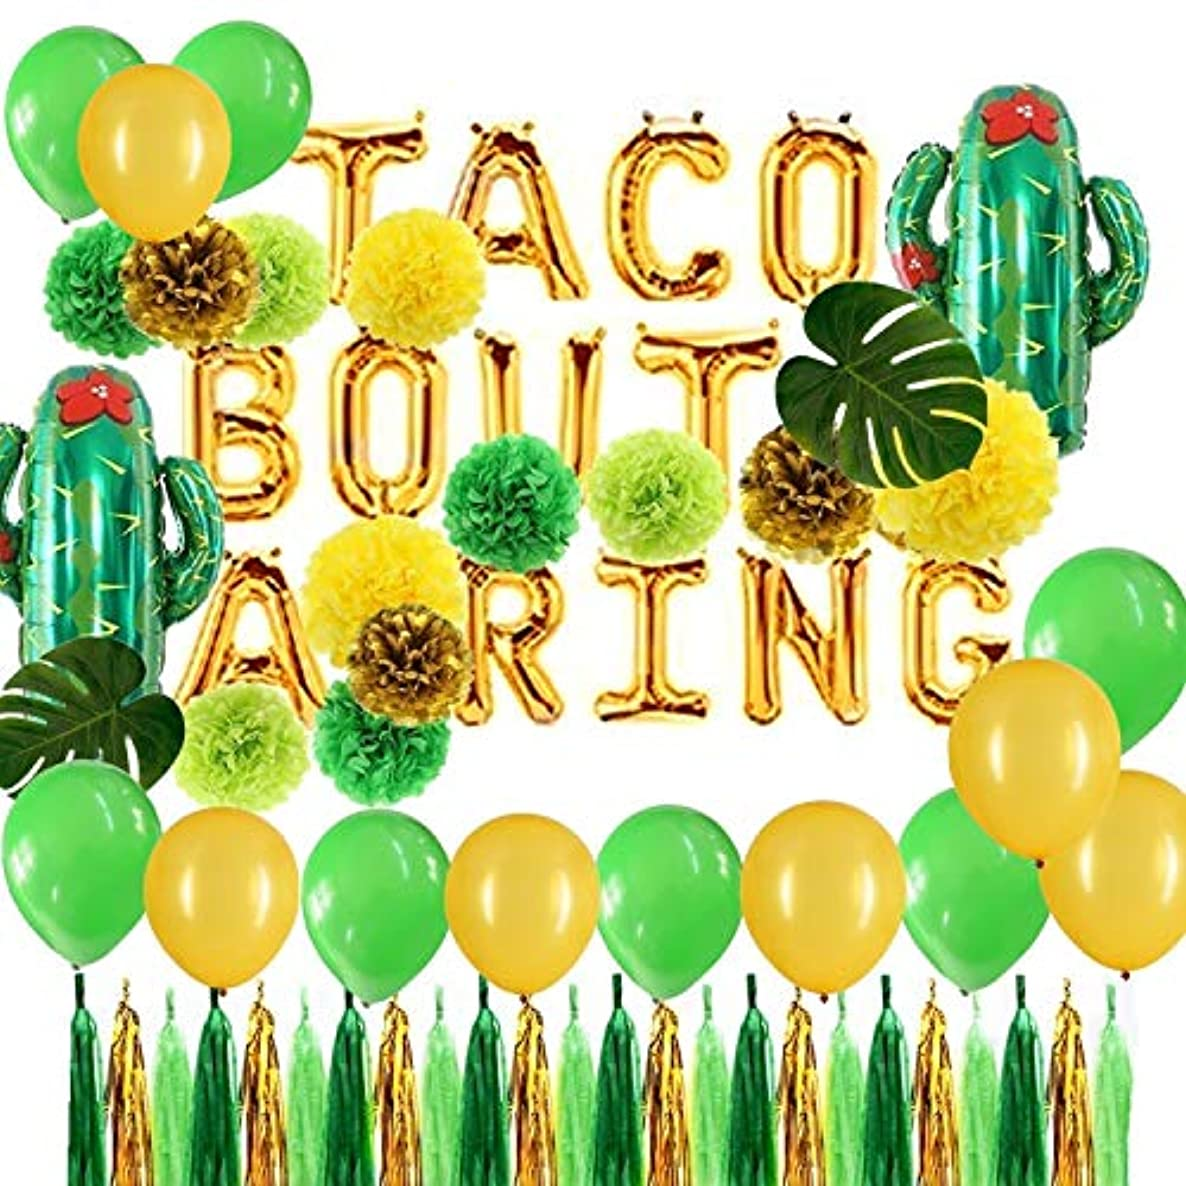 urwonderbox Green and Gold Taco Bout a Ring Foil Cactus Balloons and Tissue Pom Poms Flowers Set Fiesta Party Theme Bridal Shower Wedding Announcement Ideas Mexican Fiesta Theme Supplies